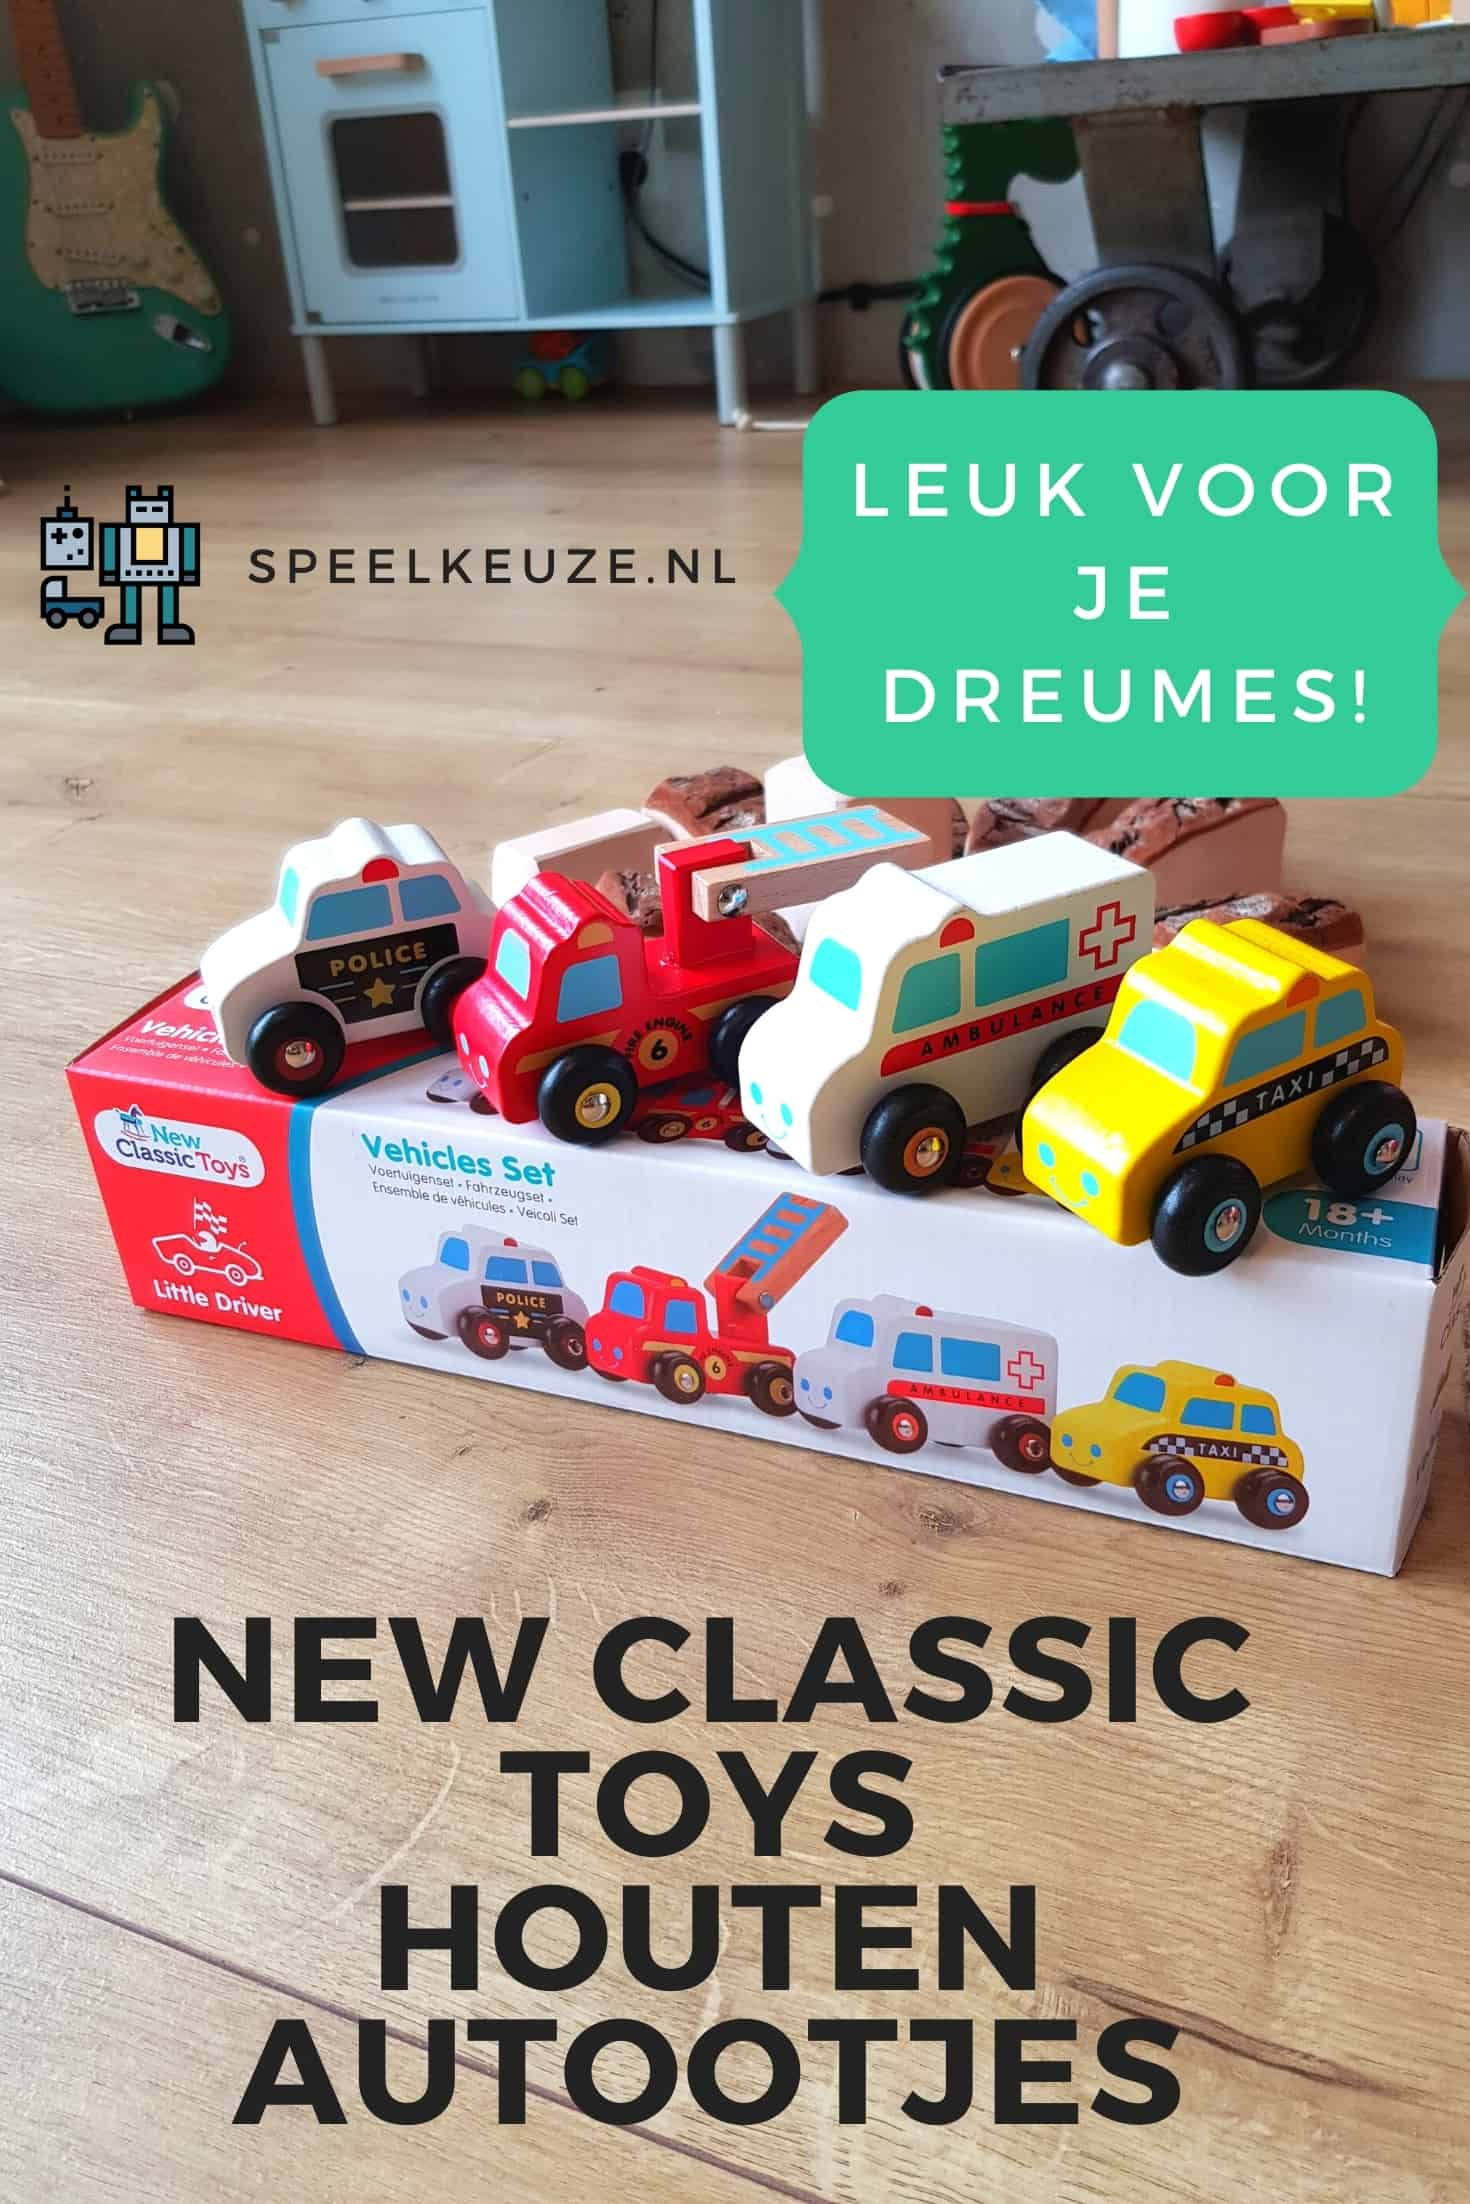 New classic toys wooden cars